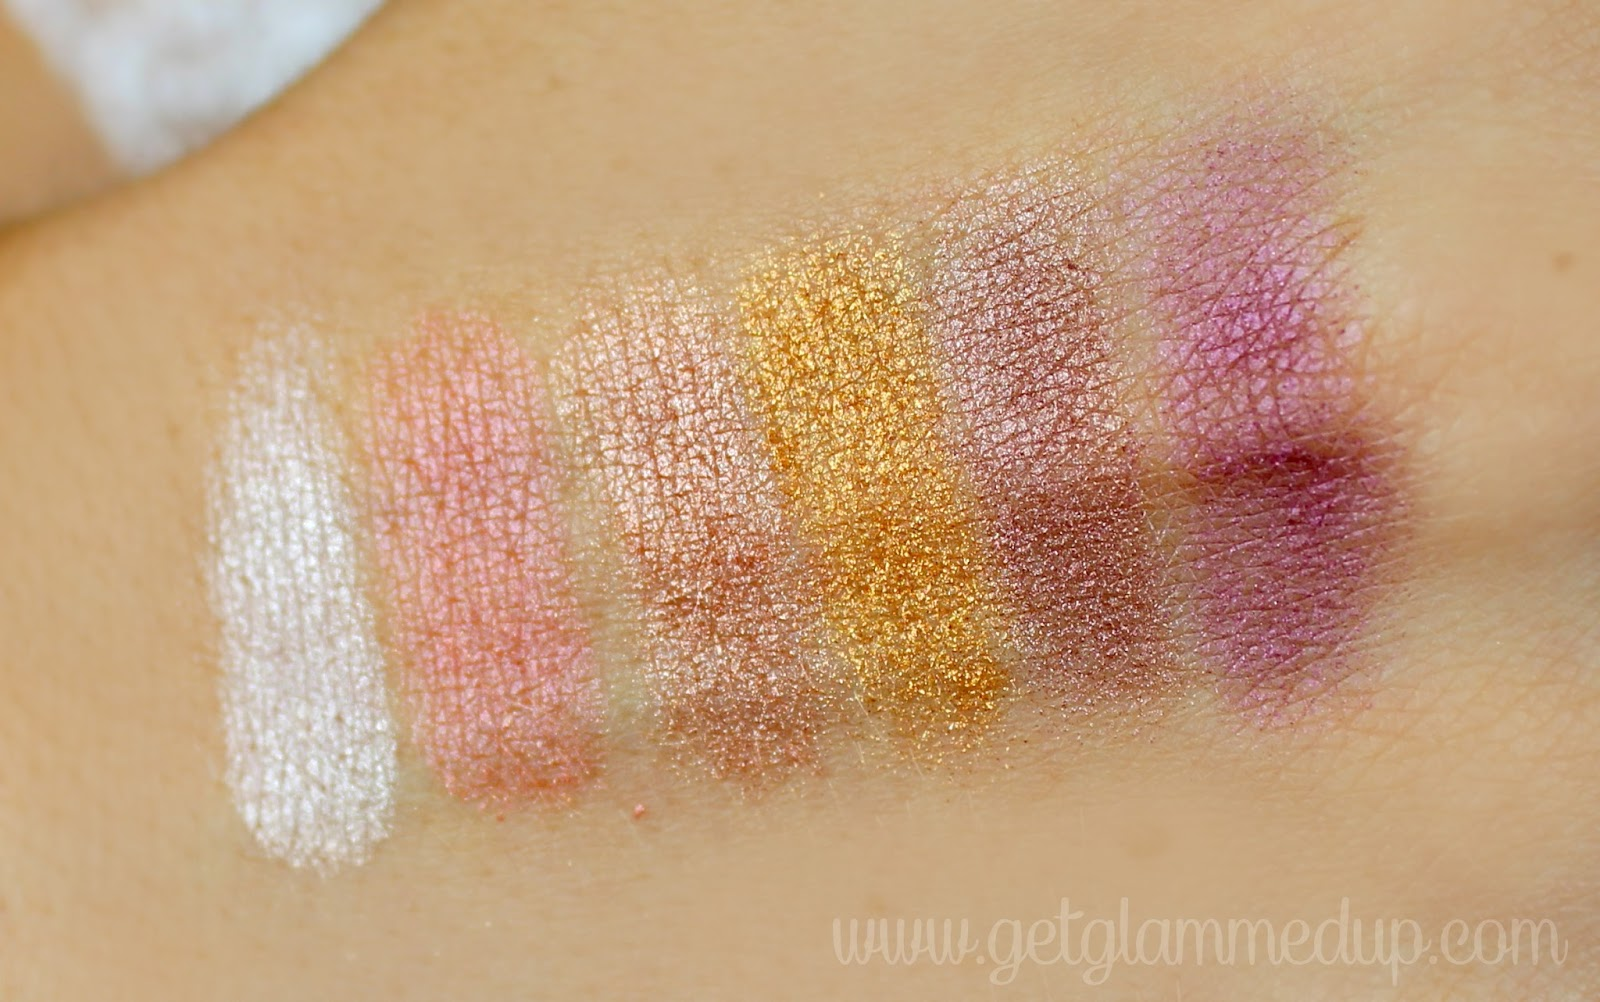 elf studio prism palette in sunset swatches